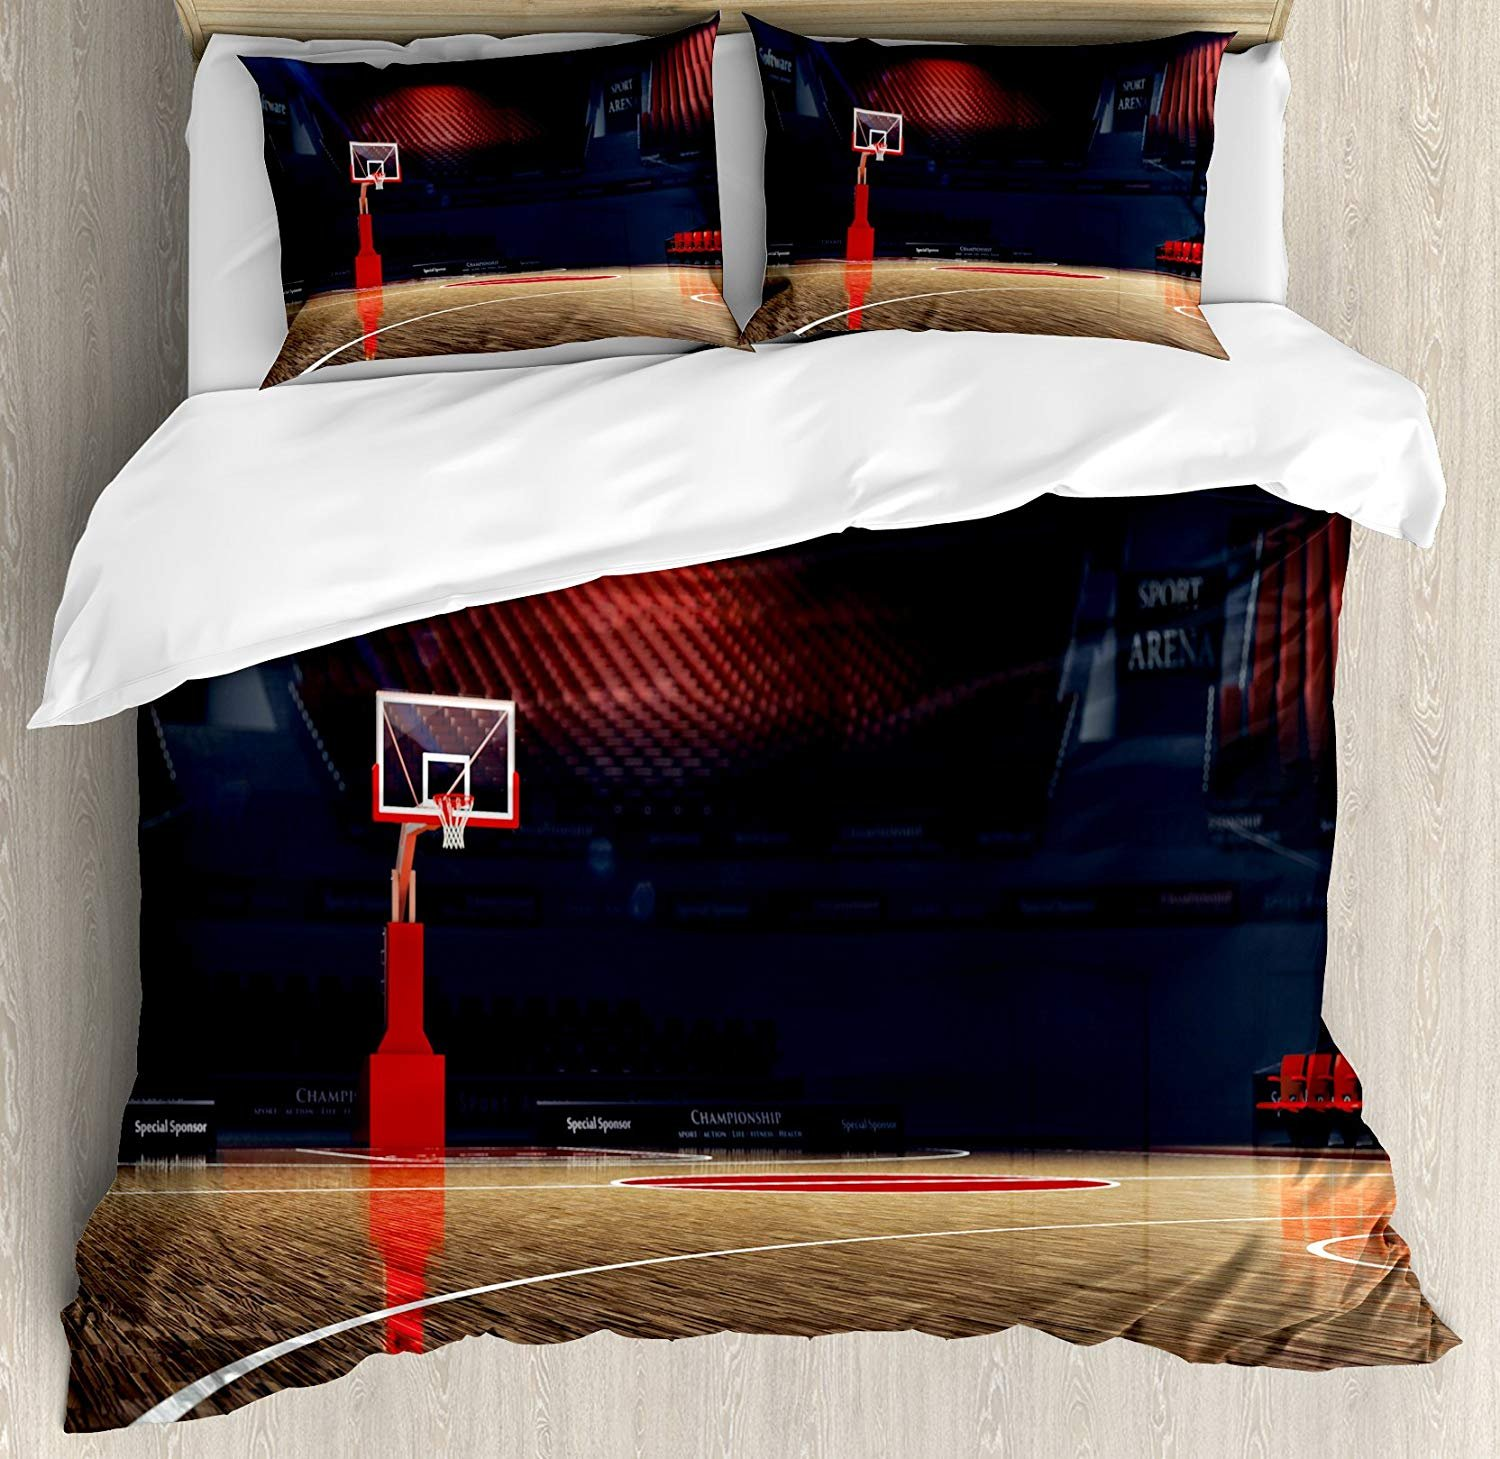 Family Decor Basketball Twin Duvet Cover Sets 4 Piece Bedding Set Bedspread with 2 Pillow Sham, Flat Sheet for Adult/Kids/Teens, Picture of Empty Basketball Court Sport Arena with Wood Floor Print